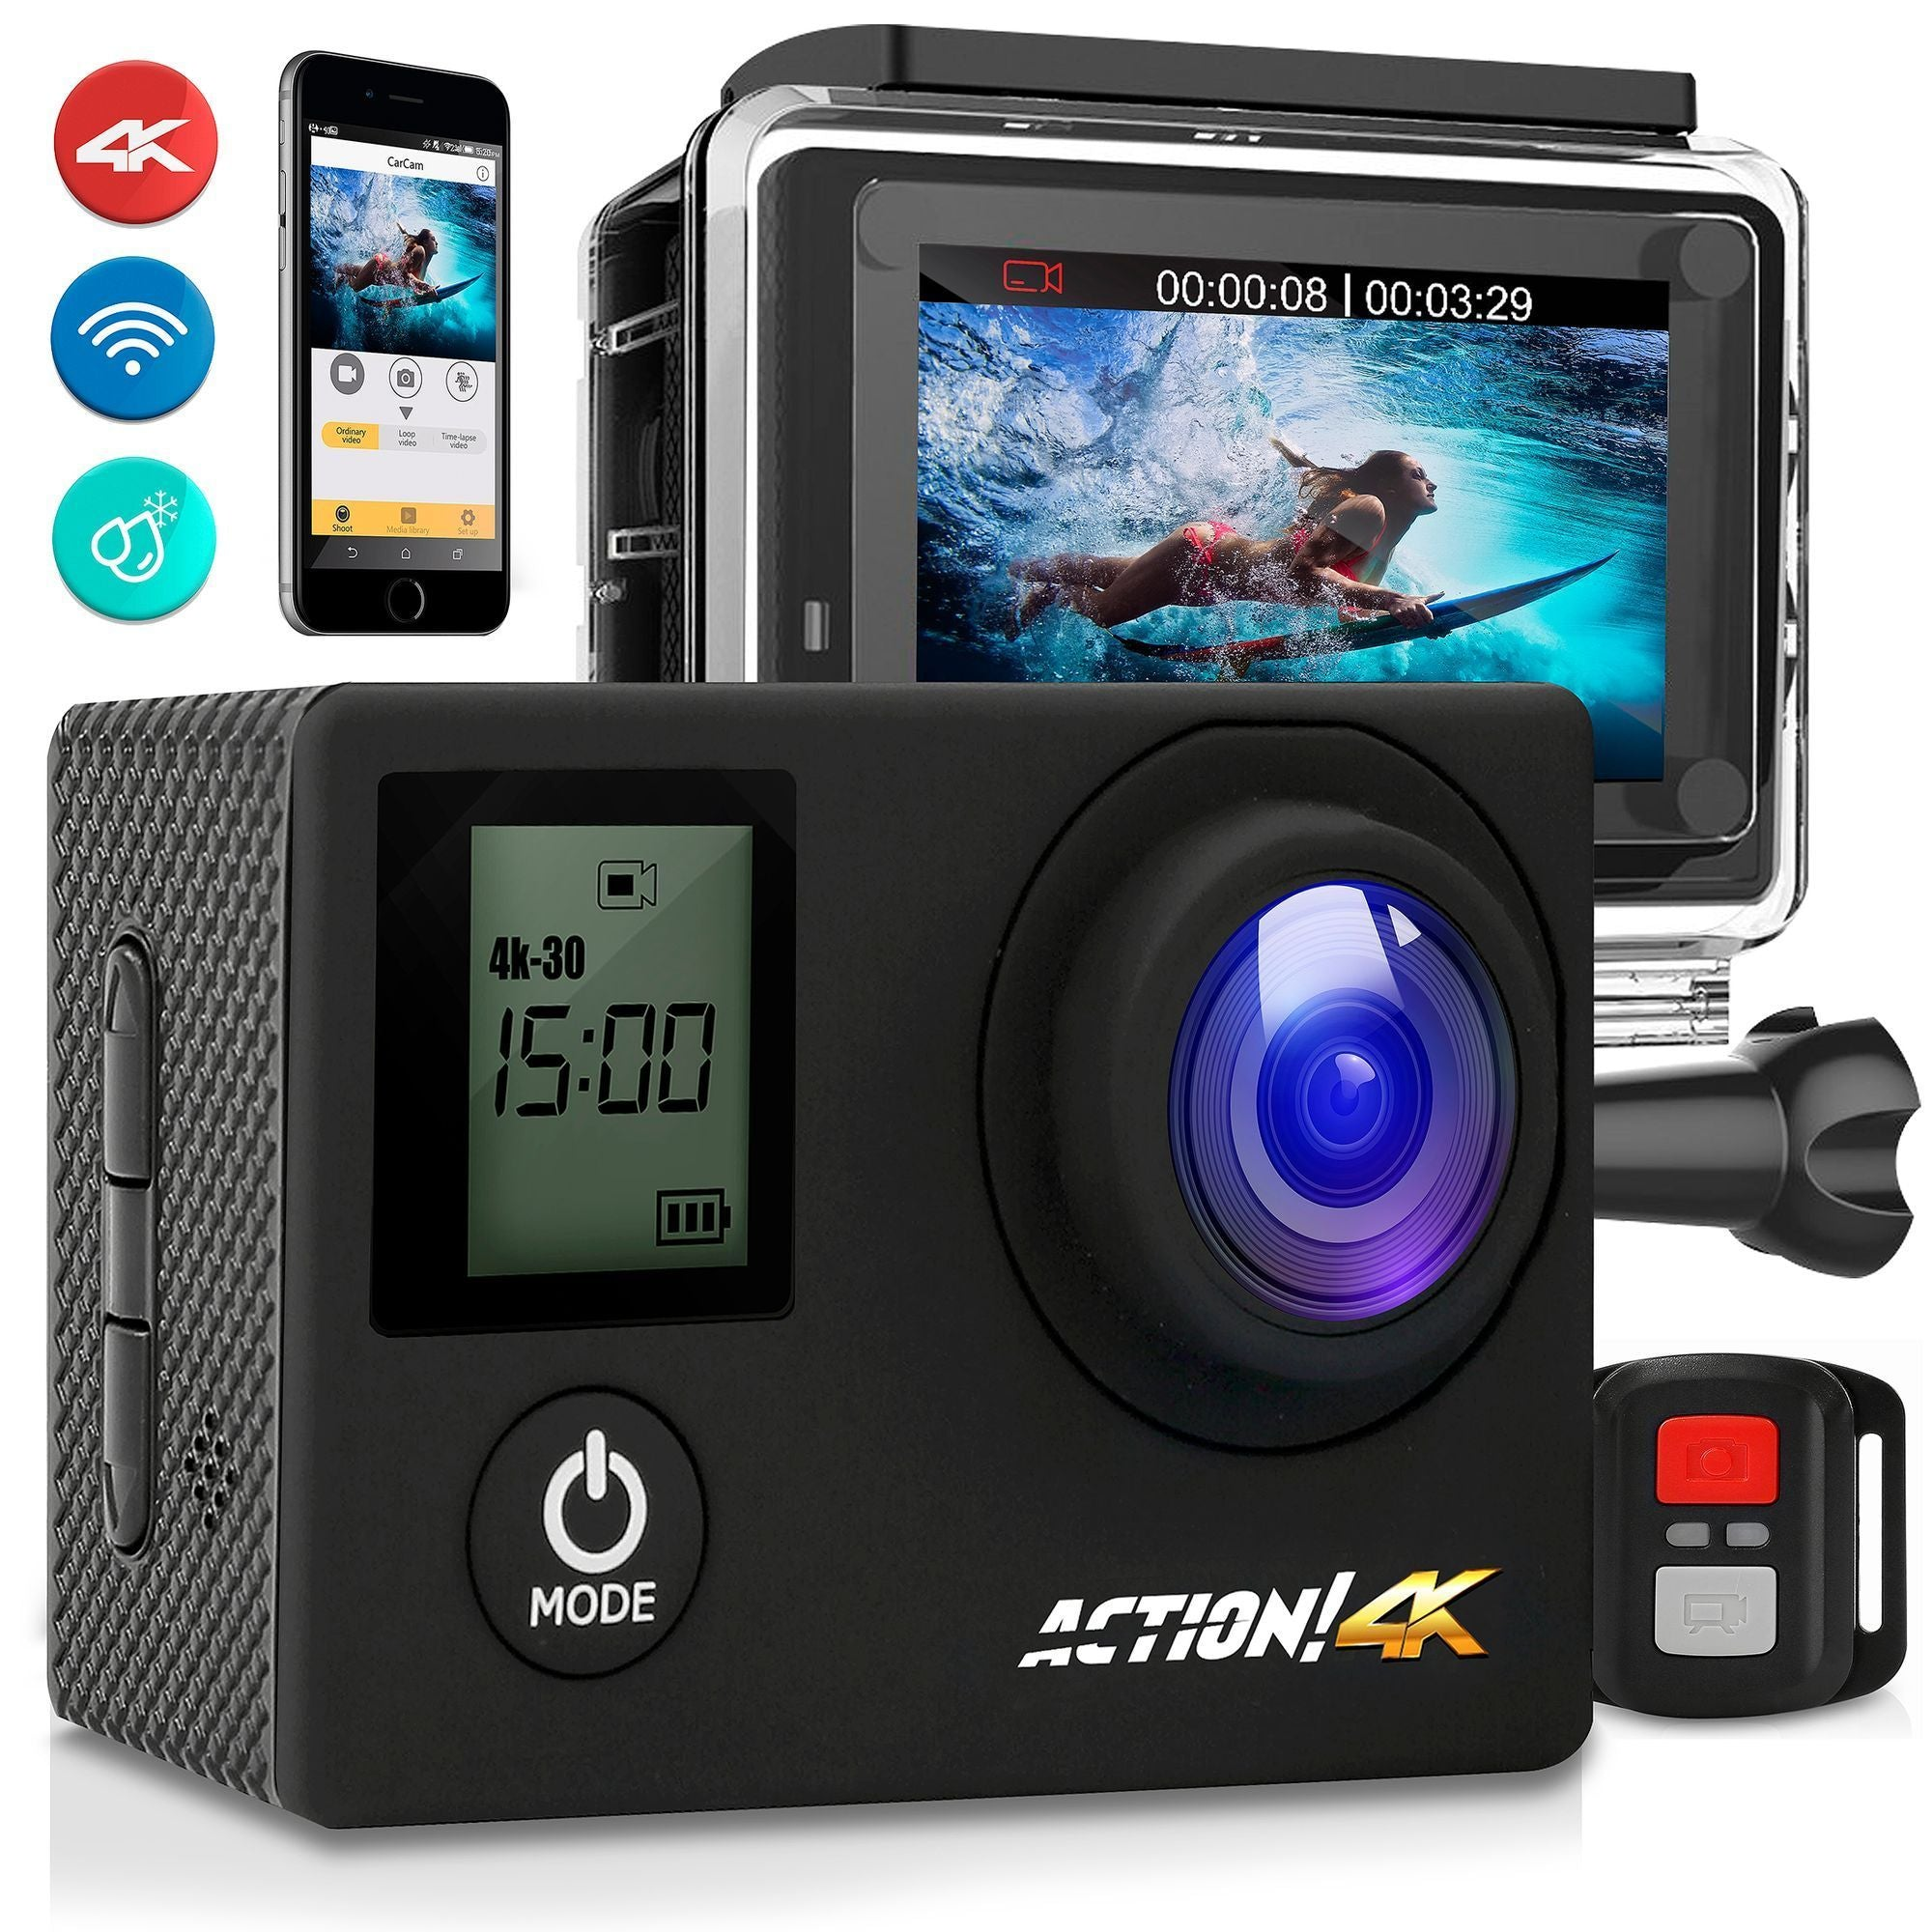 "SereneLife 4K Ultra HD WiFi Pro Sport Action Camera - 1080p UHD Sports Mini Digital Video Camcorder Kit w/ 2"" Monitor Screen - Waterproof Case, Strap, Helmet Mount Accessories Included - SL4KDSBK"